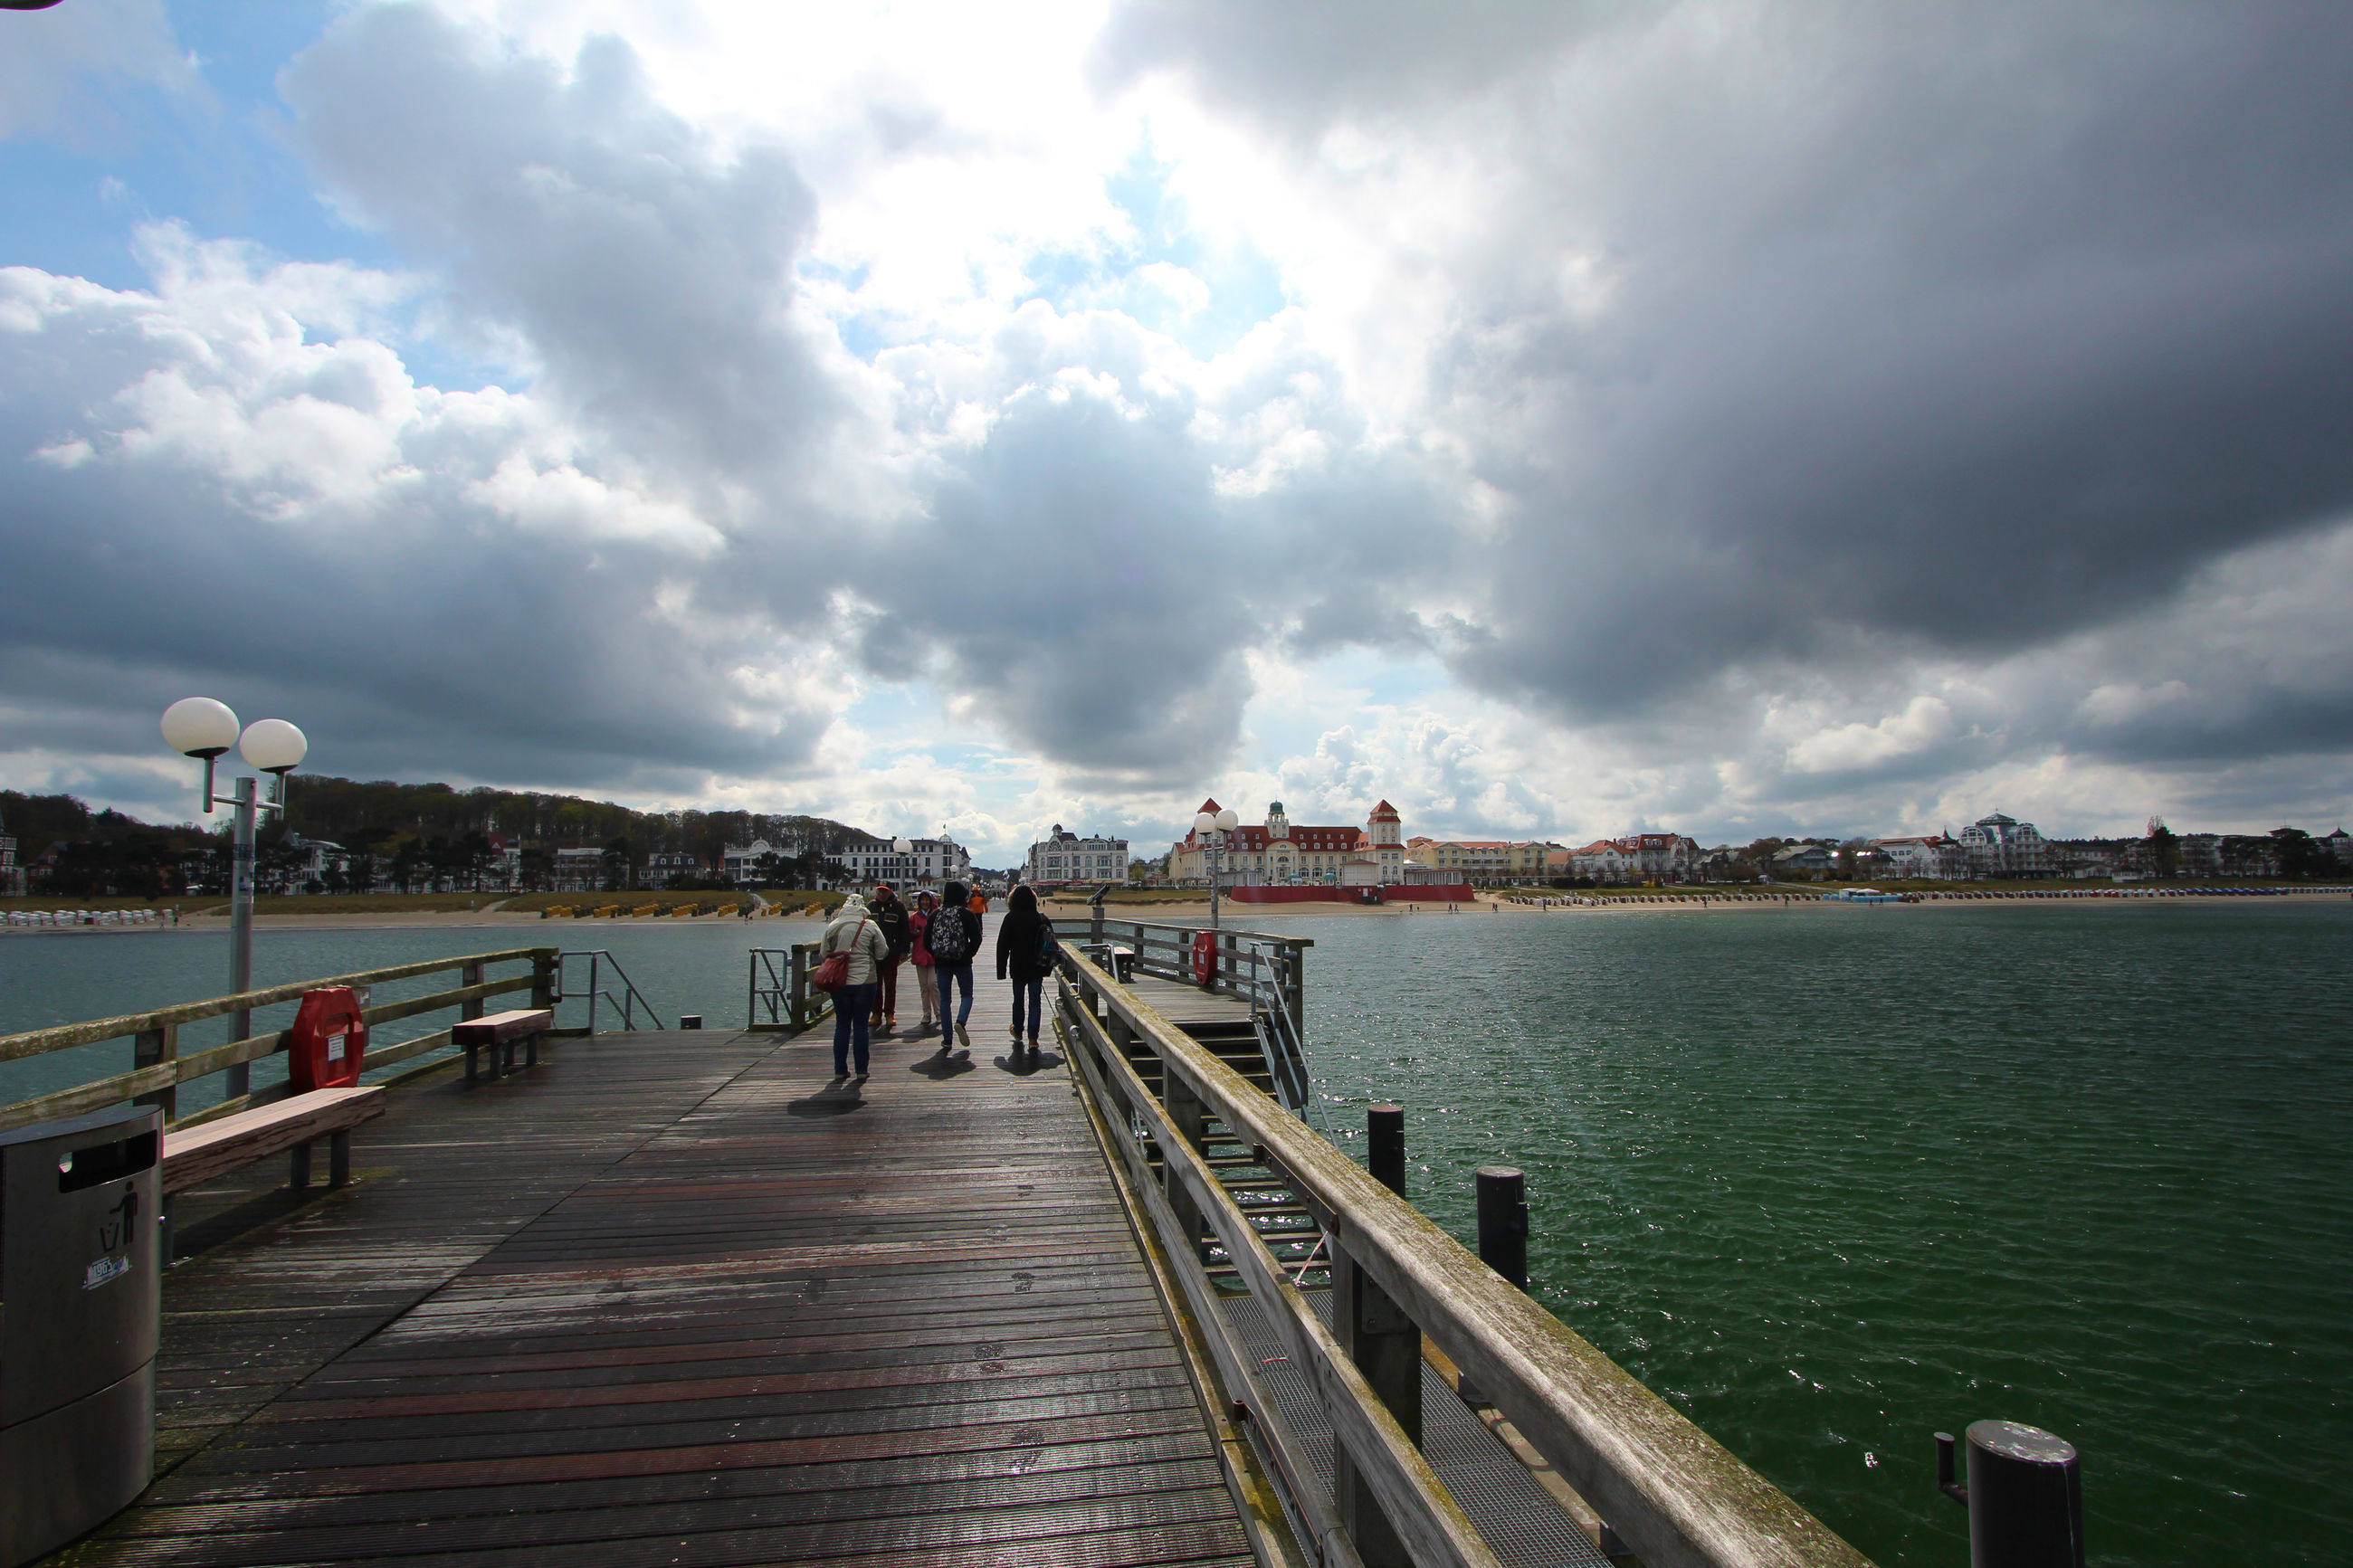 sky, water, the way forward, cloud - sky, sea, built structure, pier, cloudy, railing, men, architecture, cloud, walking, lifestyles, diminishing perspective, person, leisure activity, building exterior, incidental people